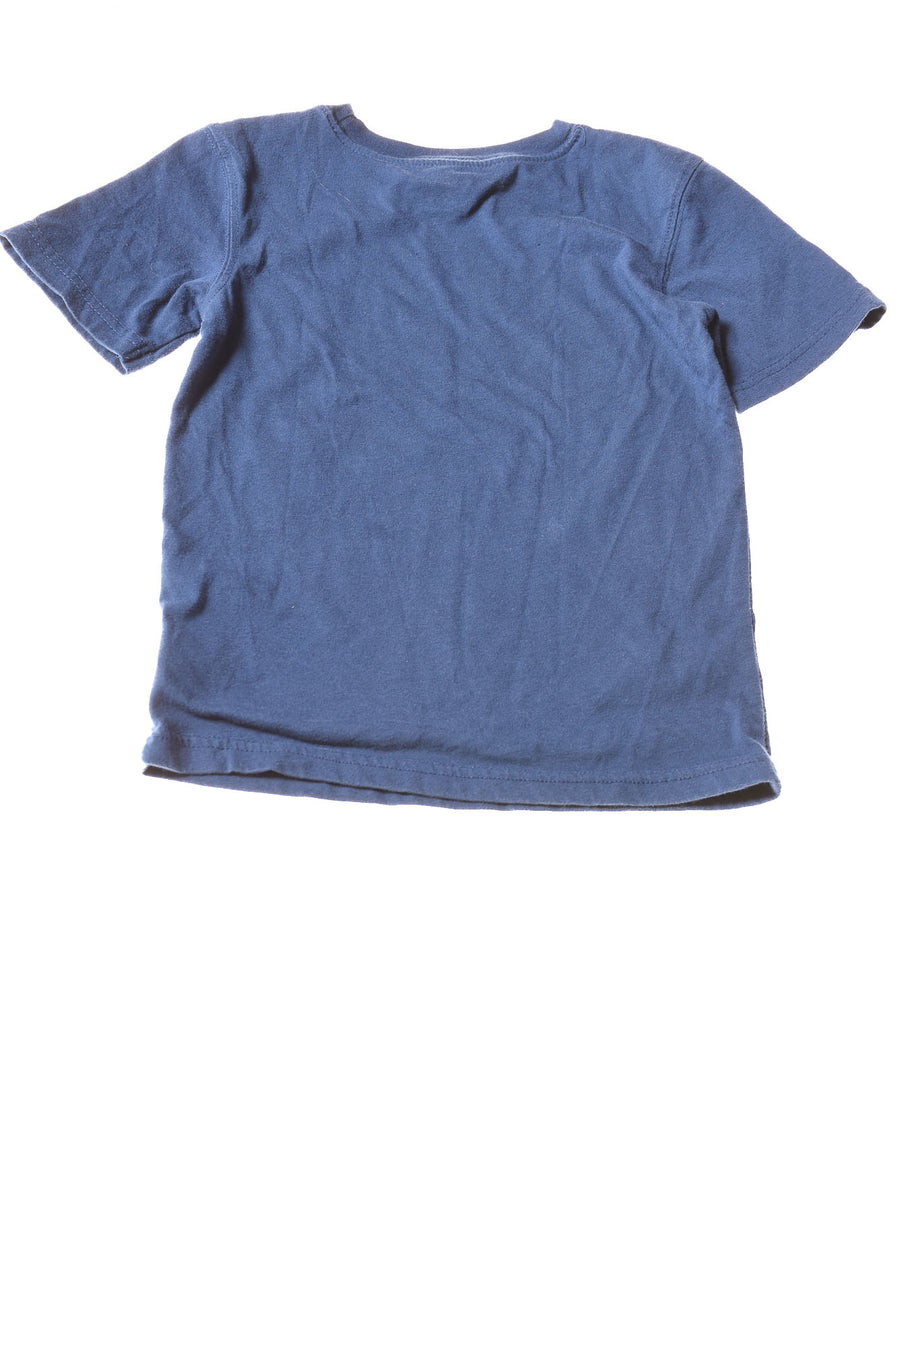 USED Gap Kids Toddler Boy's Top X-Small Blue